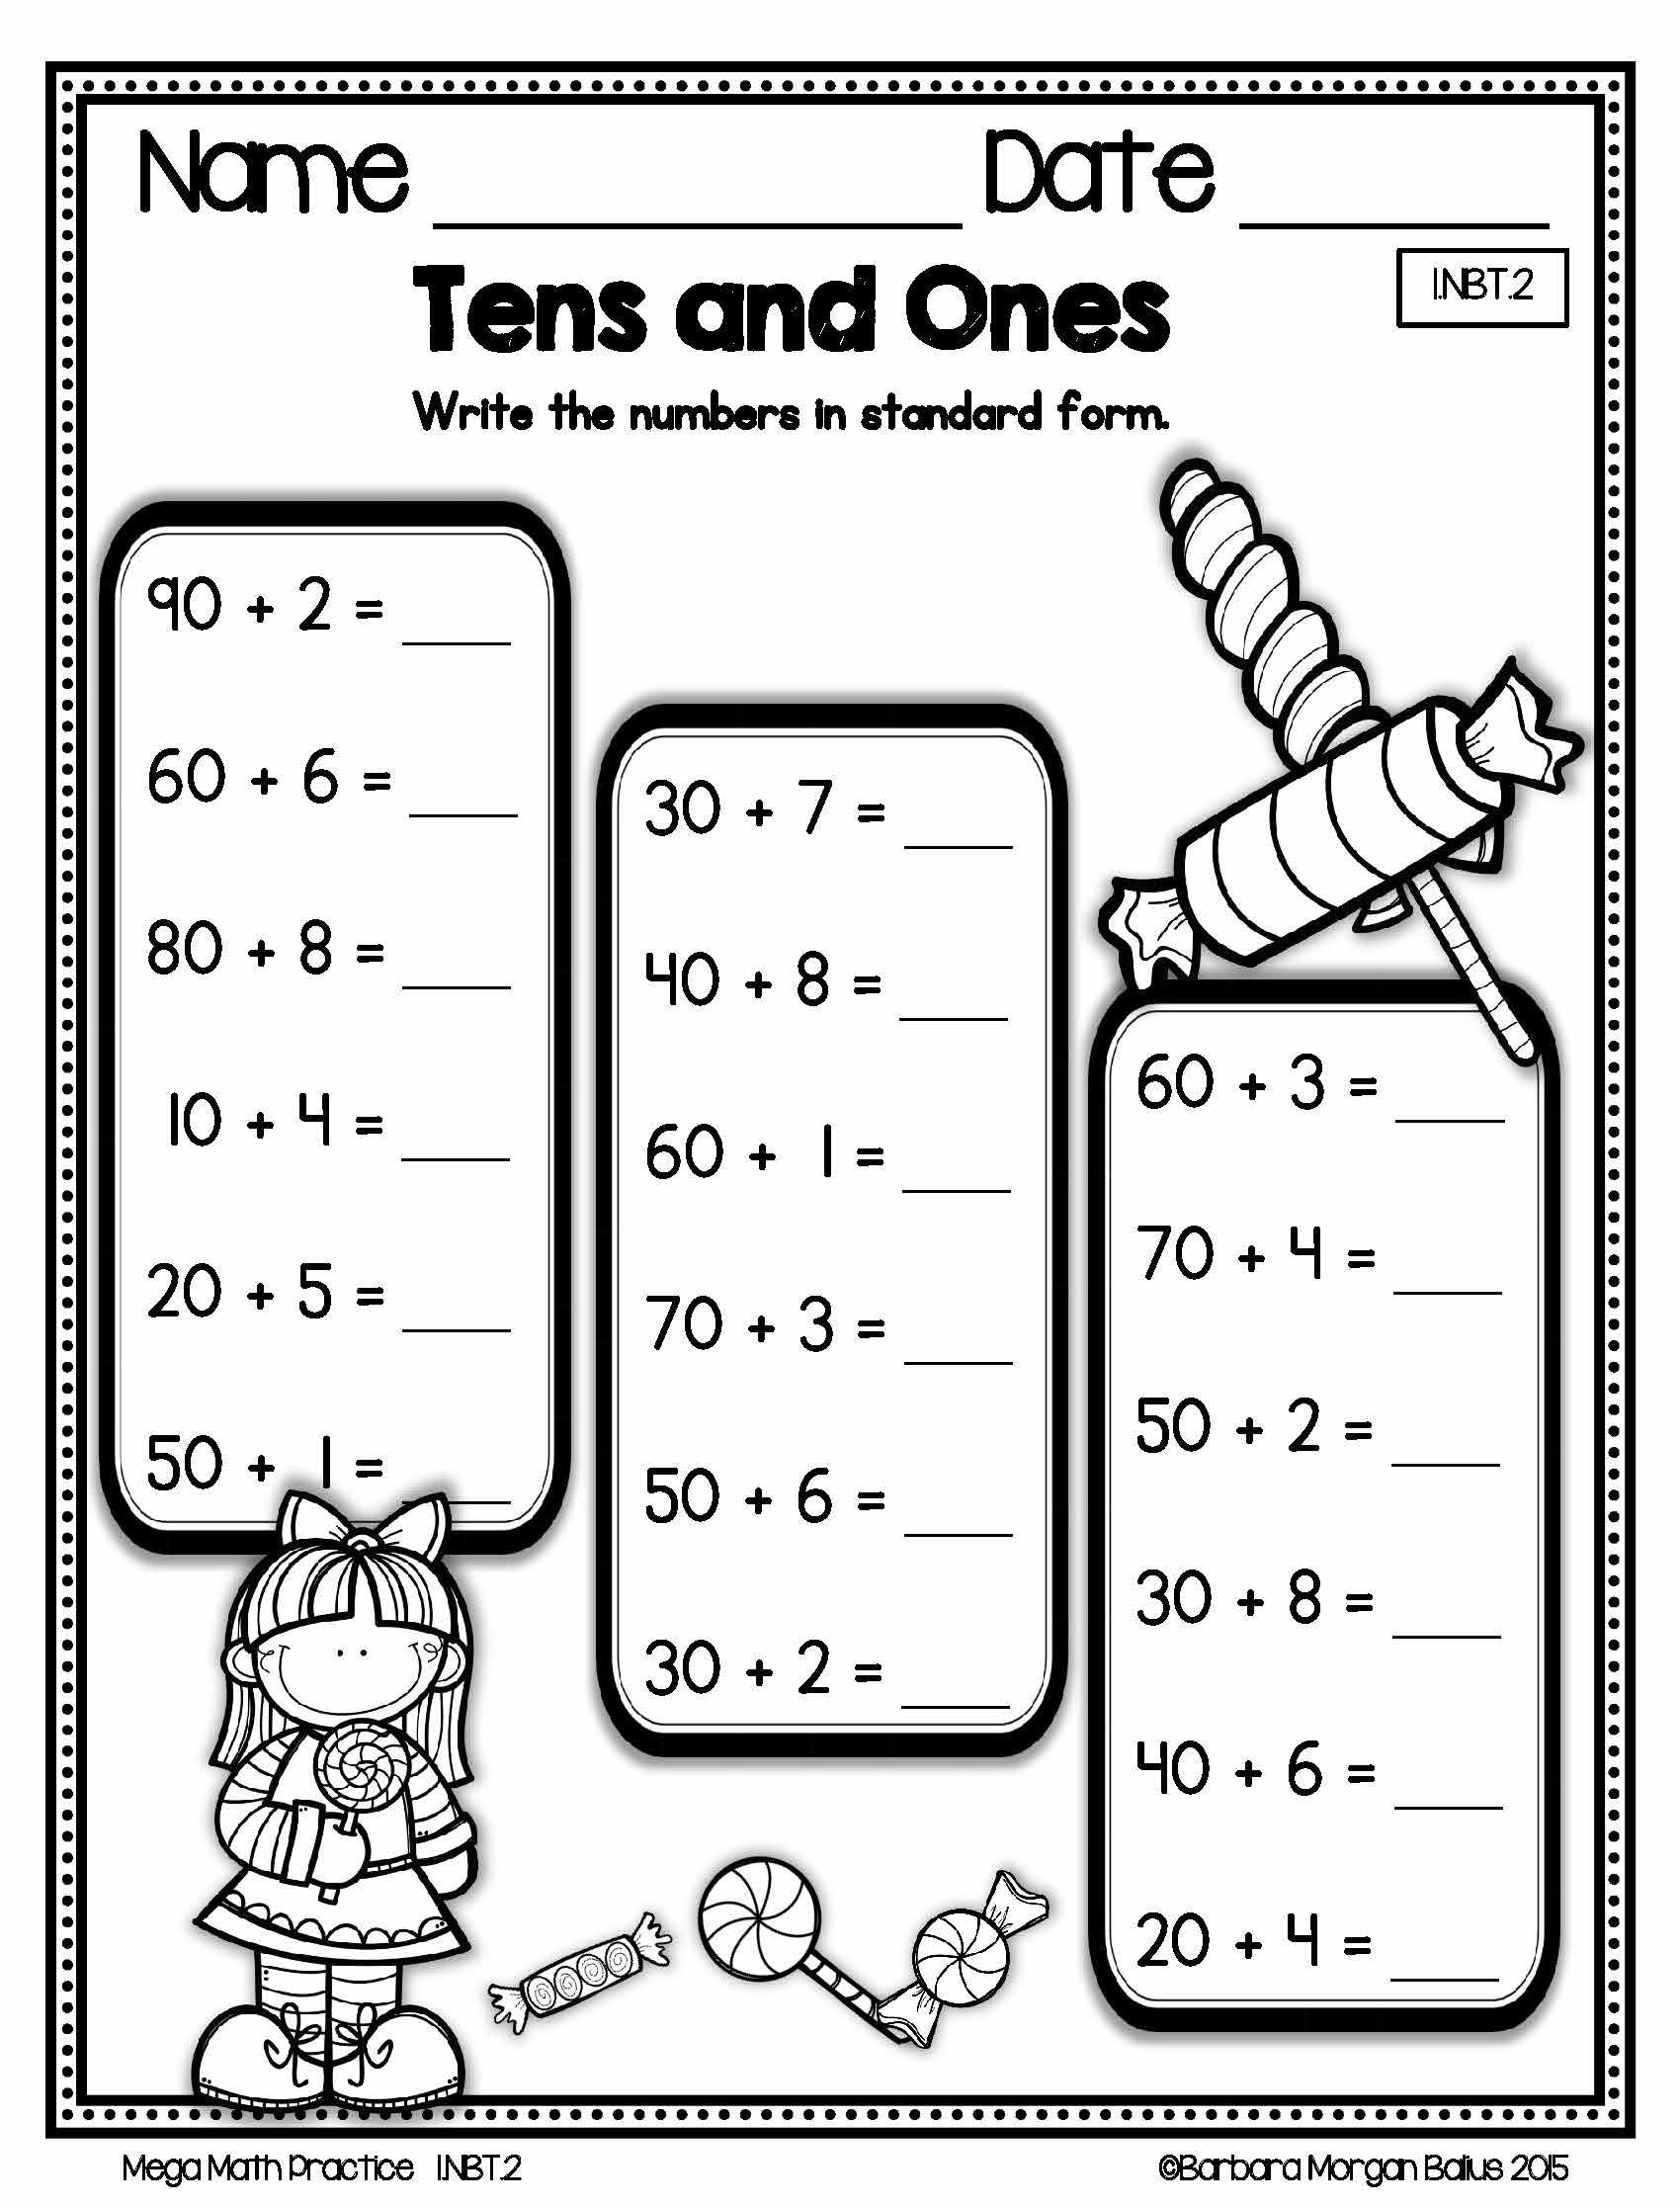 Mega Math Practice 1 Nbt 2 Digs Deeper Into The Numbers And Base Ten Standard By Giving Your